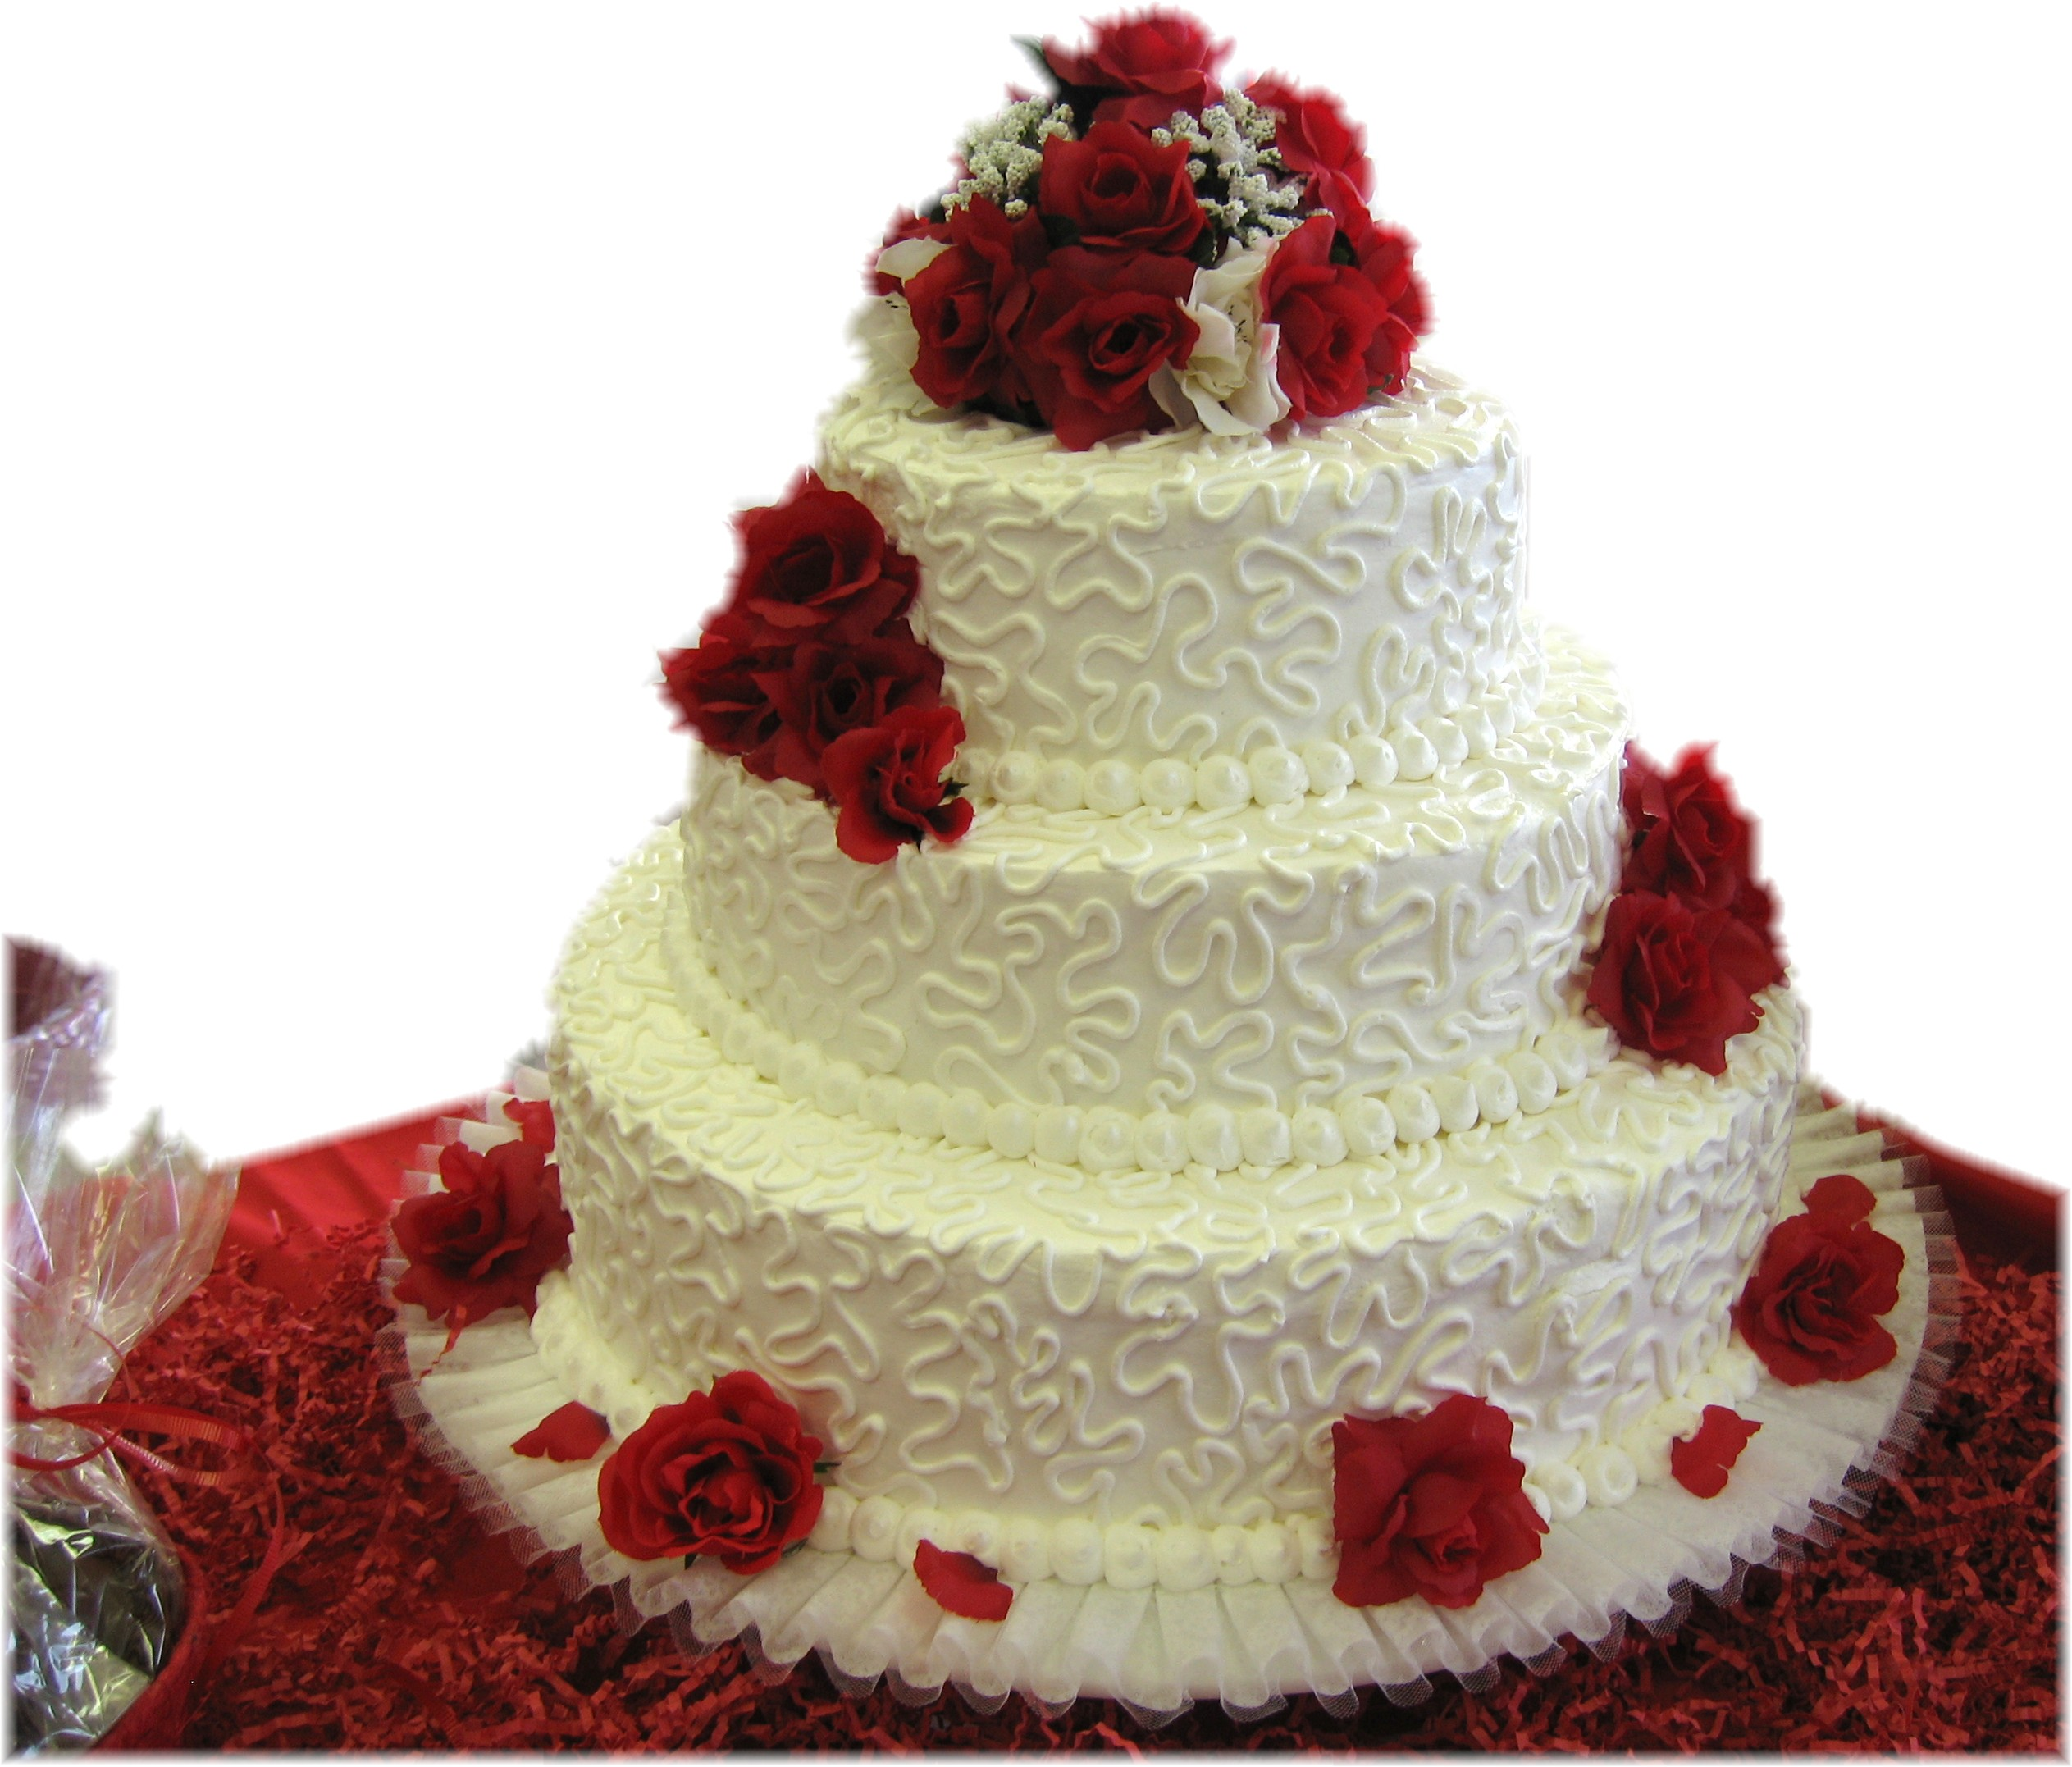 1 5 2 Valentine Wedding Cake